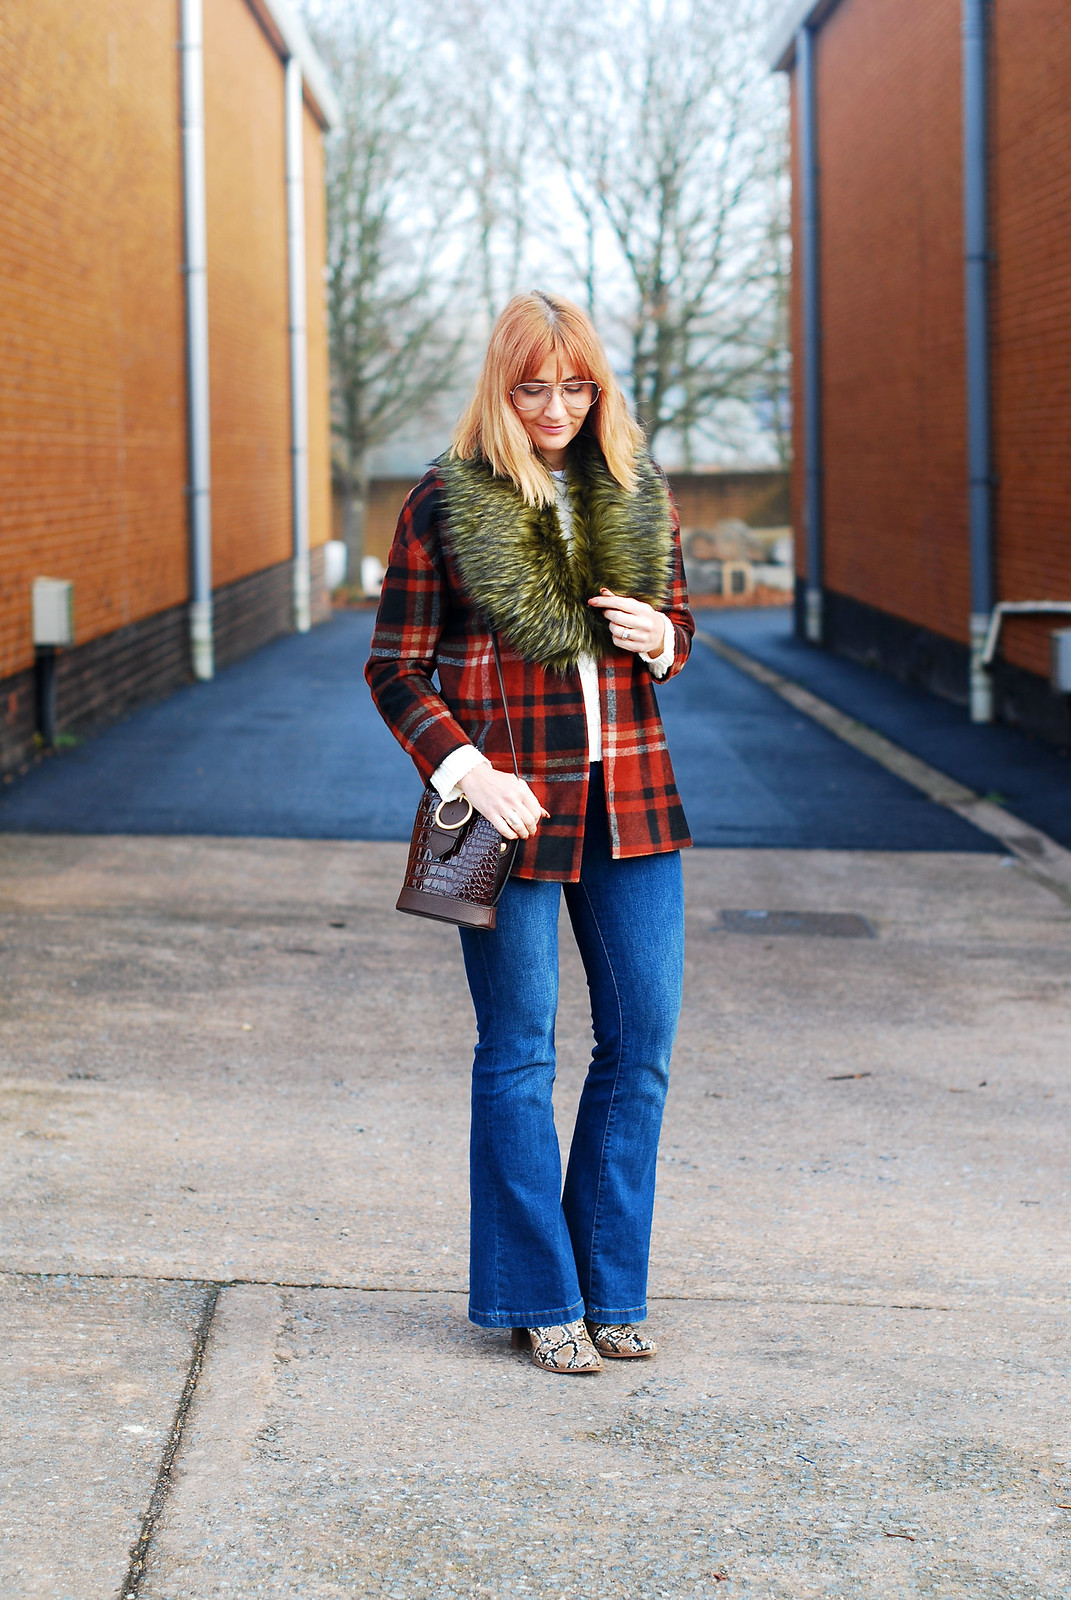 Autumnal casual outfit of faux fur collar  red tartan jacket  denim flares  snakeskin boots | Not Dressed As Lamb, over 40 style